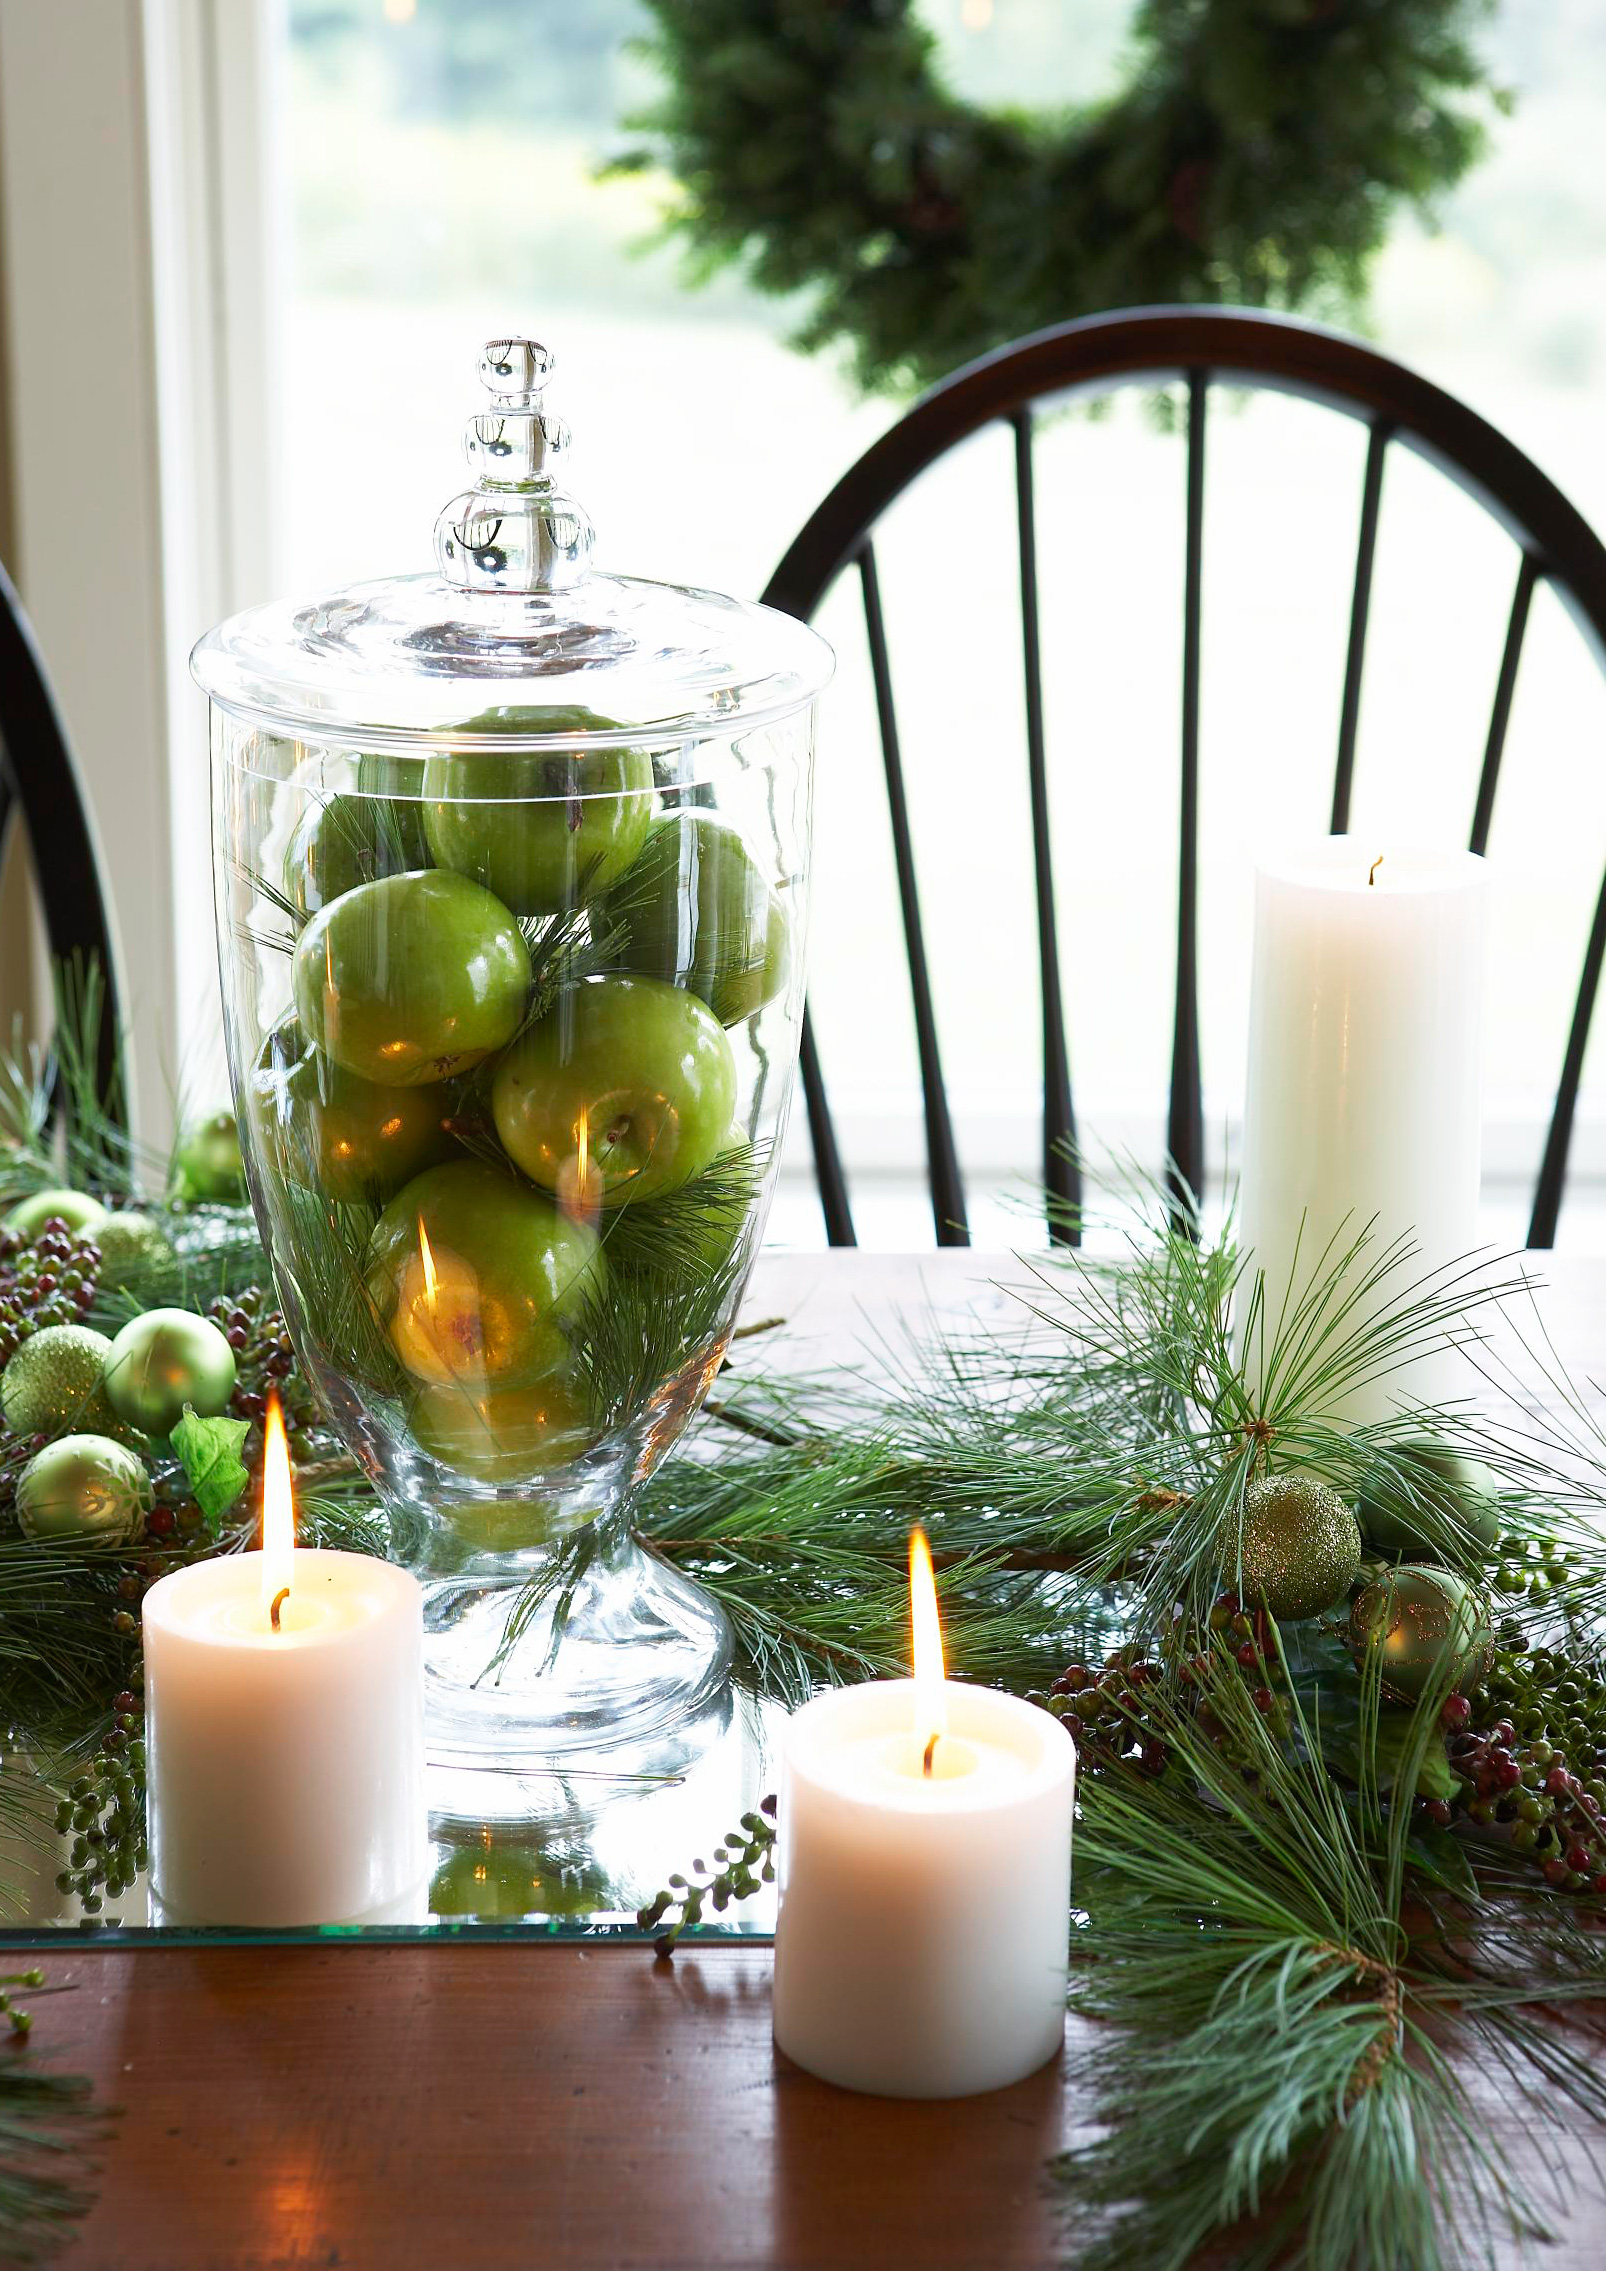 Christmas centerpiece ideas: apples